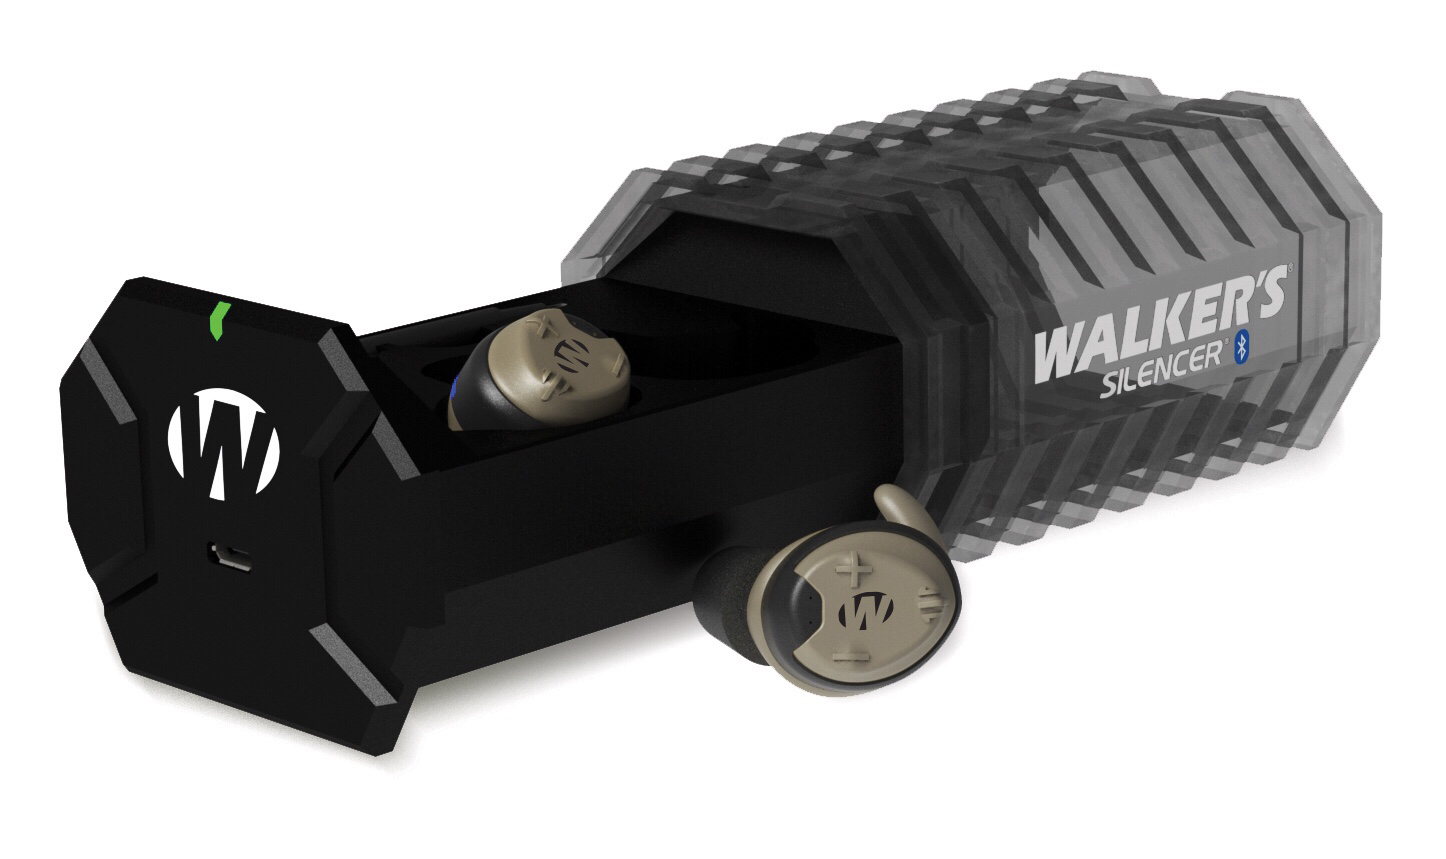 Image courtesy of Google Images (https://www.walkersgameear.com/silencer-bluetooth-rechargeable-in-the-ear-pair/)